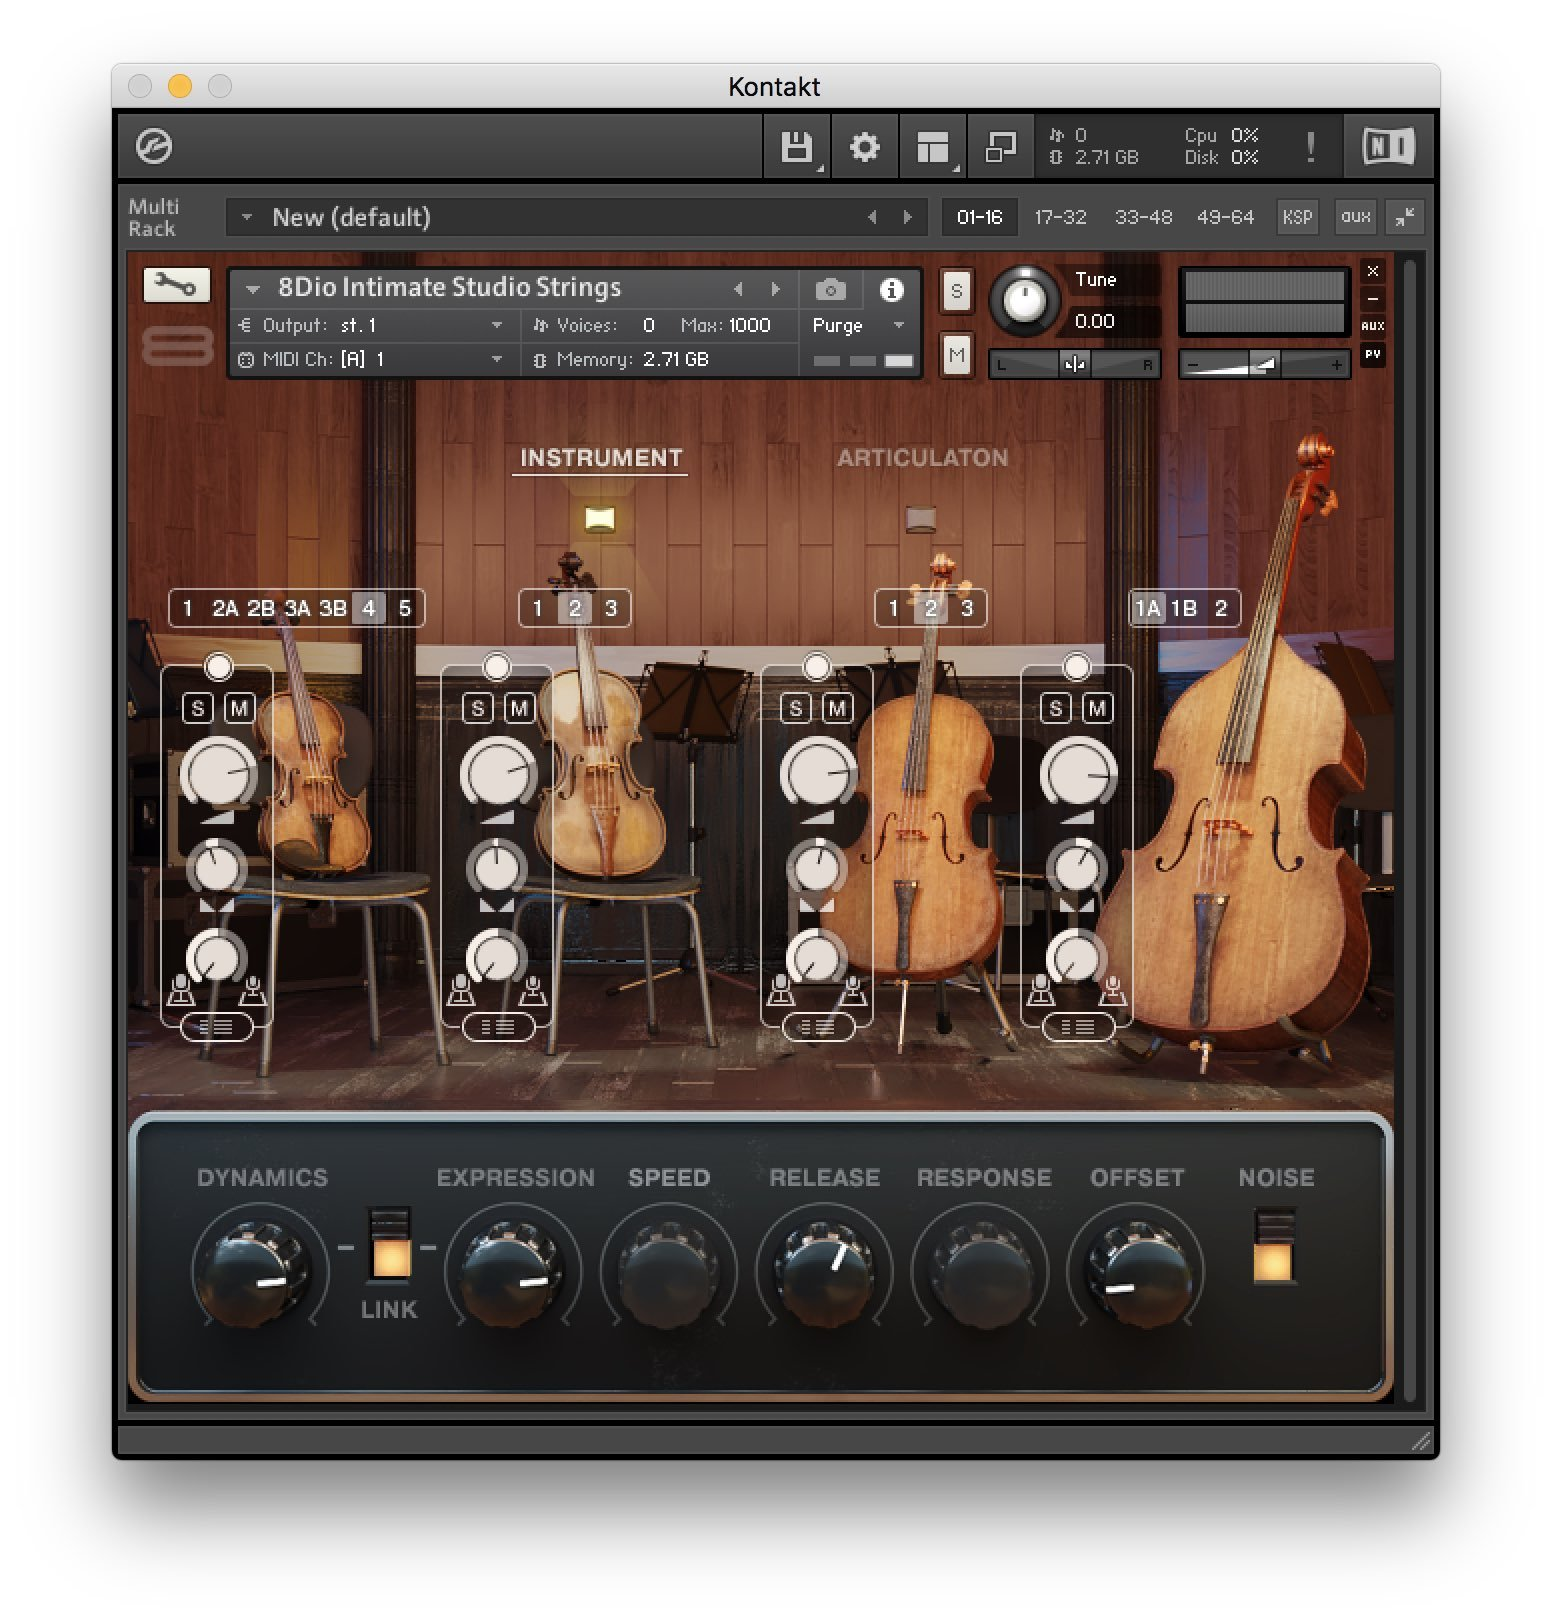 8Dio Intimate Studio Strings - Recensione - Interfaccia